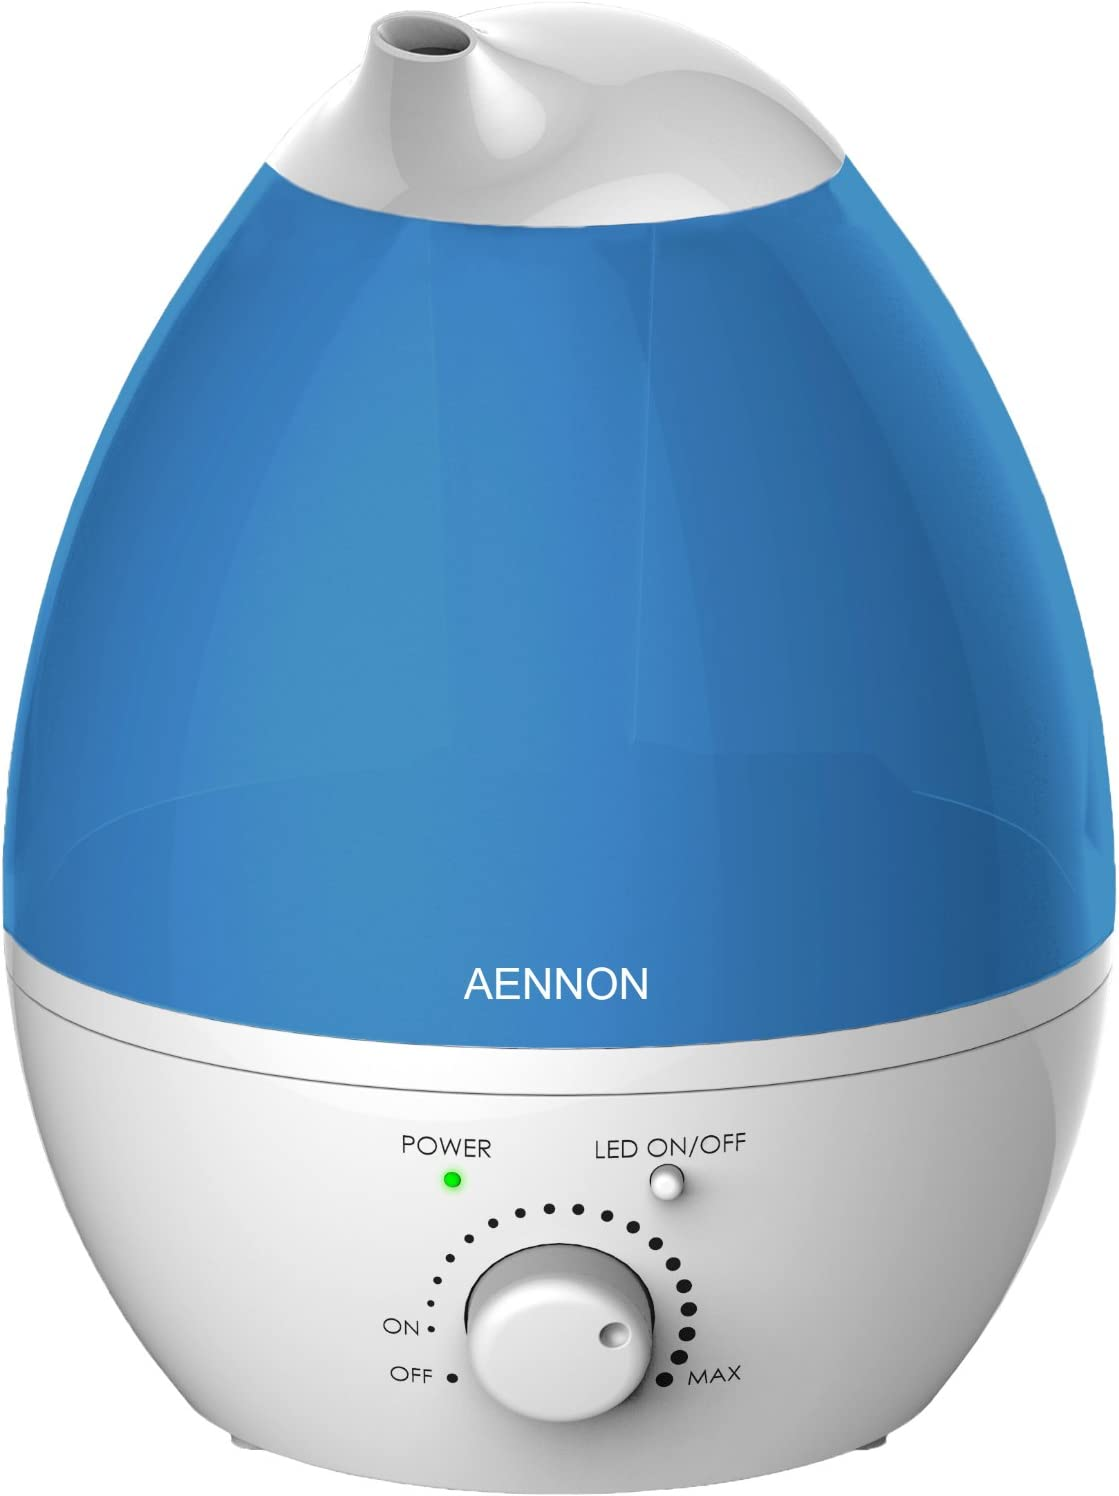 0.2 Gal. Personal Ultrasonic Cool Mist Humidifier for Small Rooms